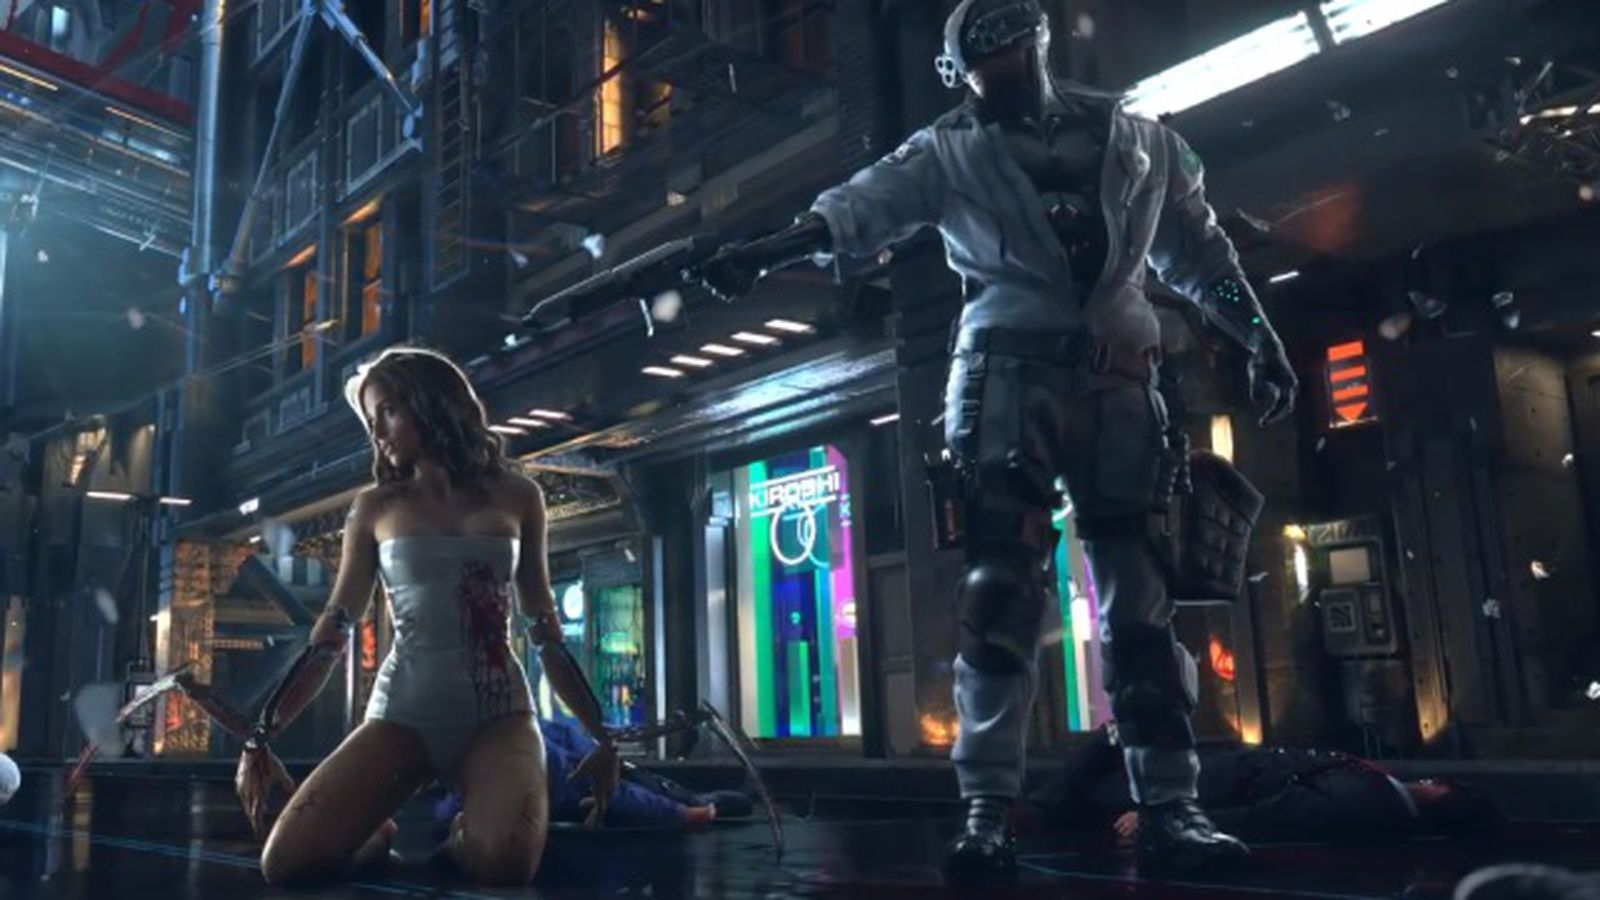 Cyberpunk 2077 Developer CD Projekt RED Will Be at E3 2018